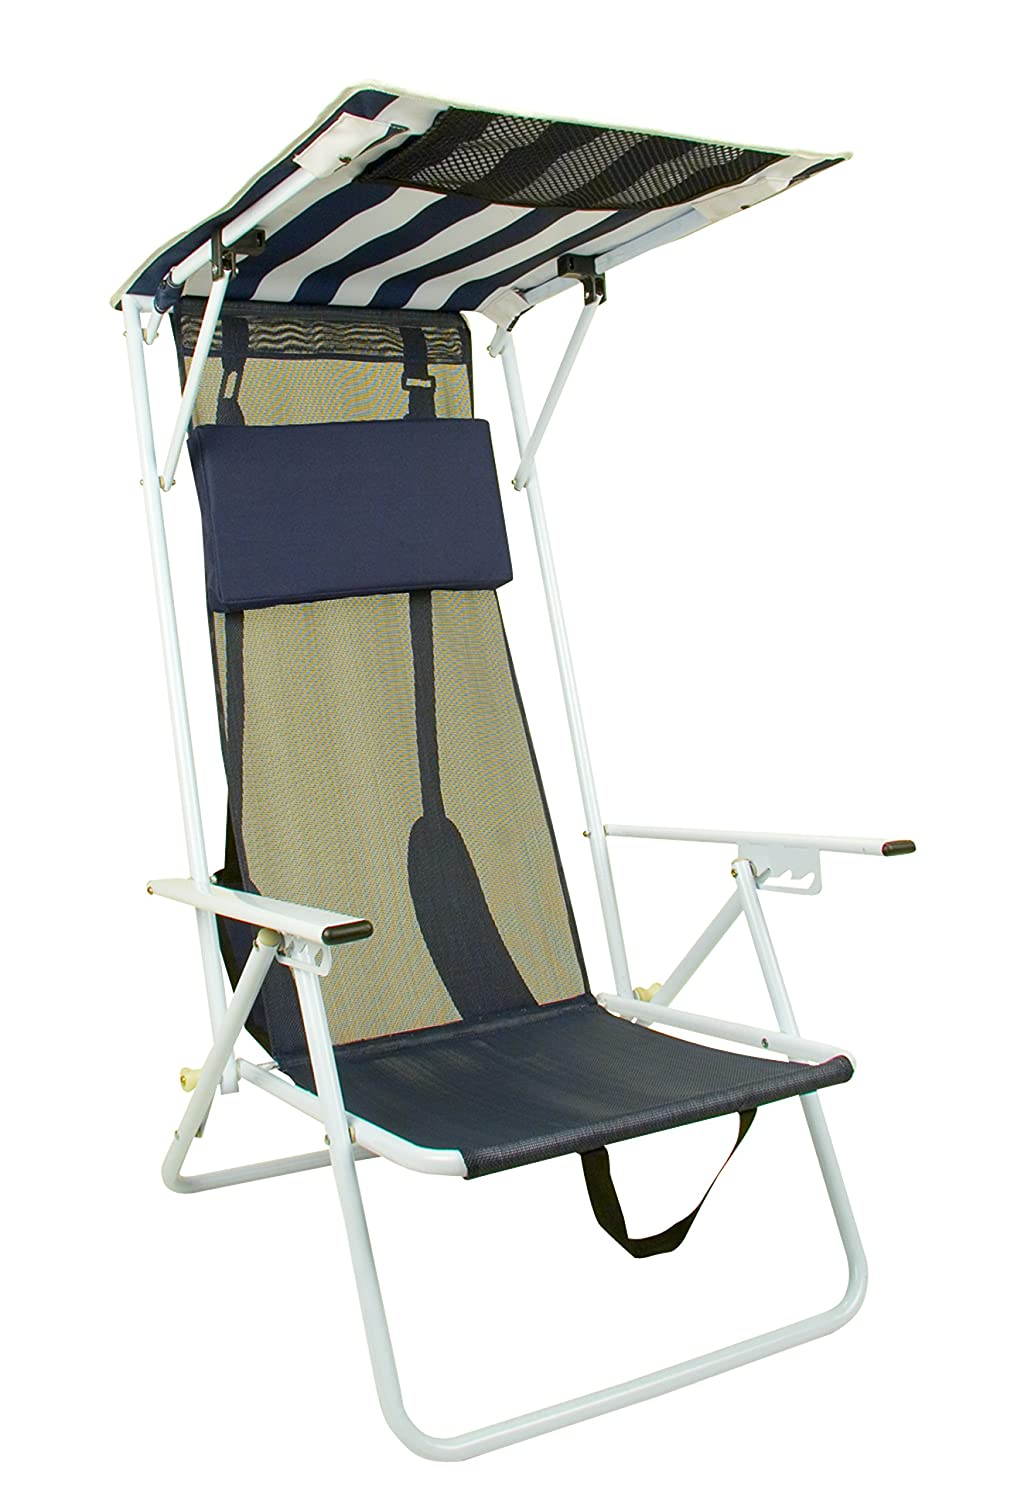 Beach chair with canopy - Amazon Com Quik Shade Folding Beach Chair Striped Navy Blue Camping Furniture Sports Outdoors